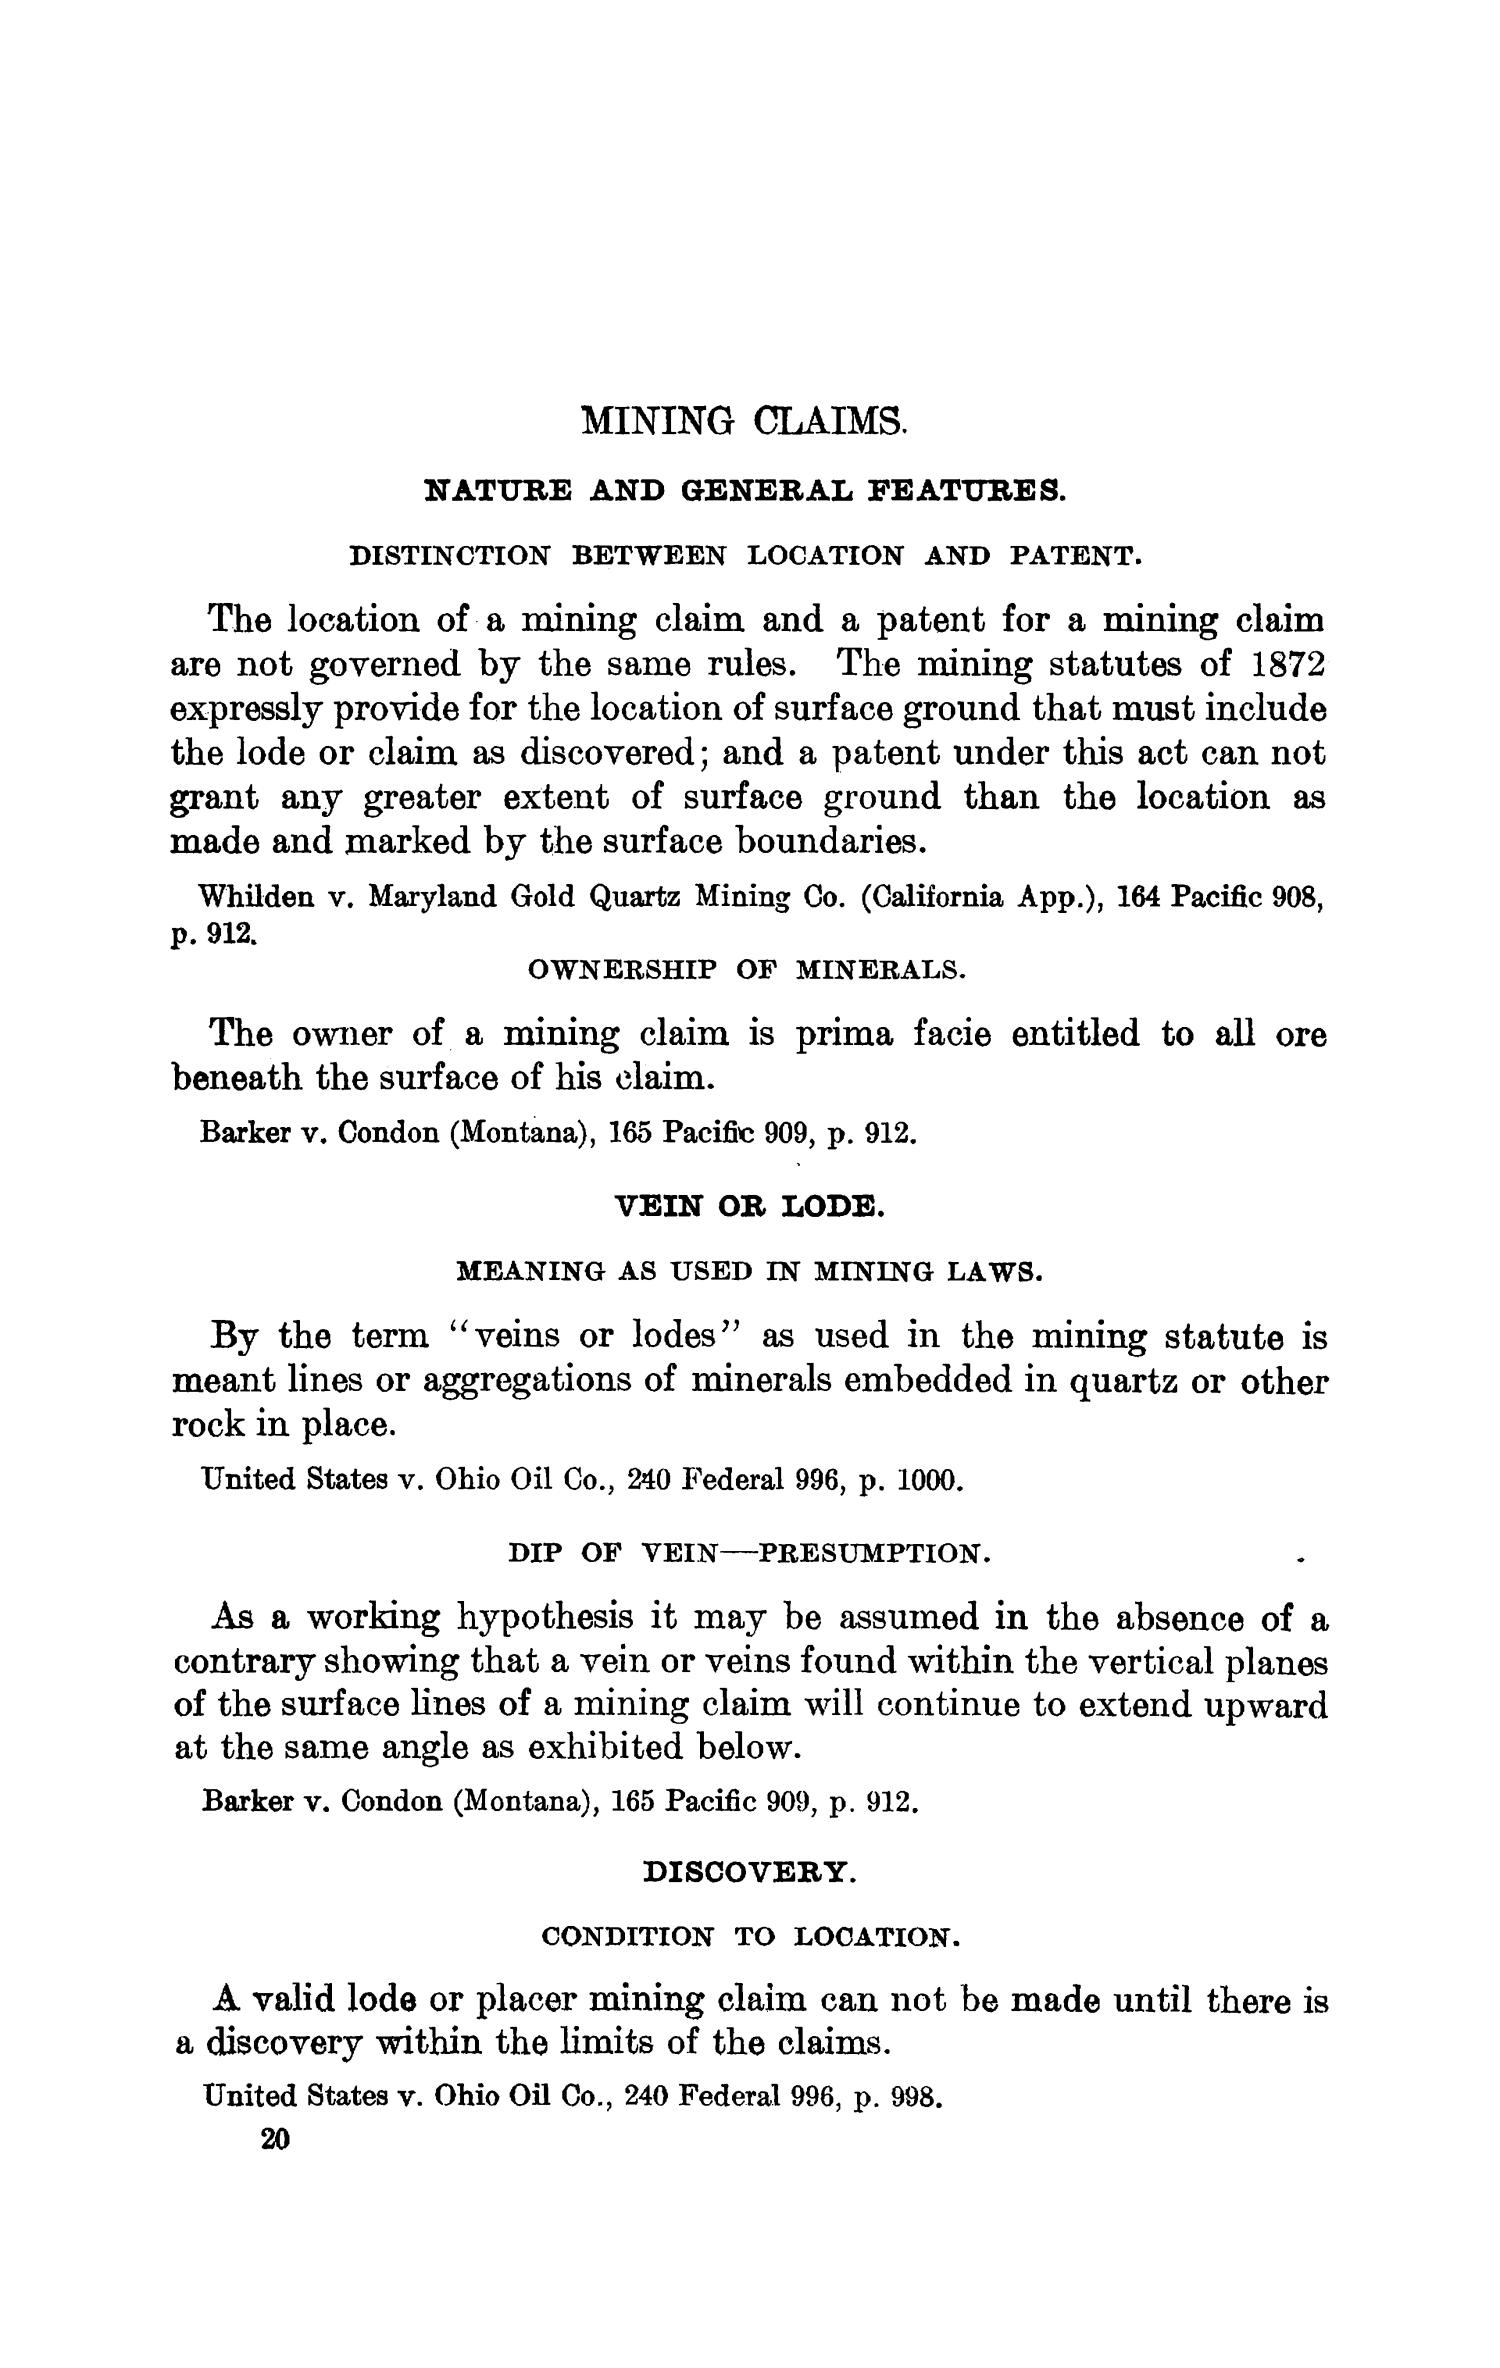 Abstracts of Current Decisions on Mines and Mining: May to August, 1917                                                                                                      20